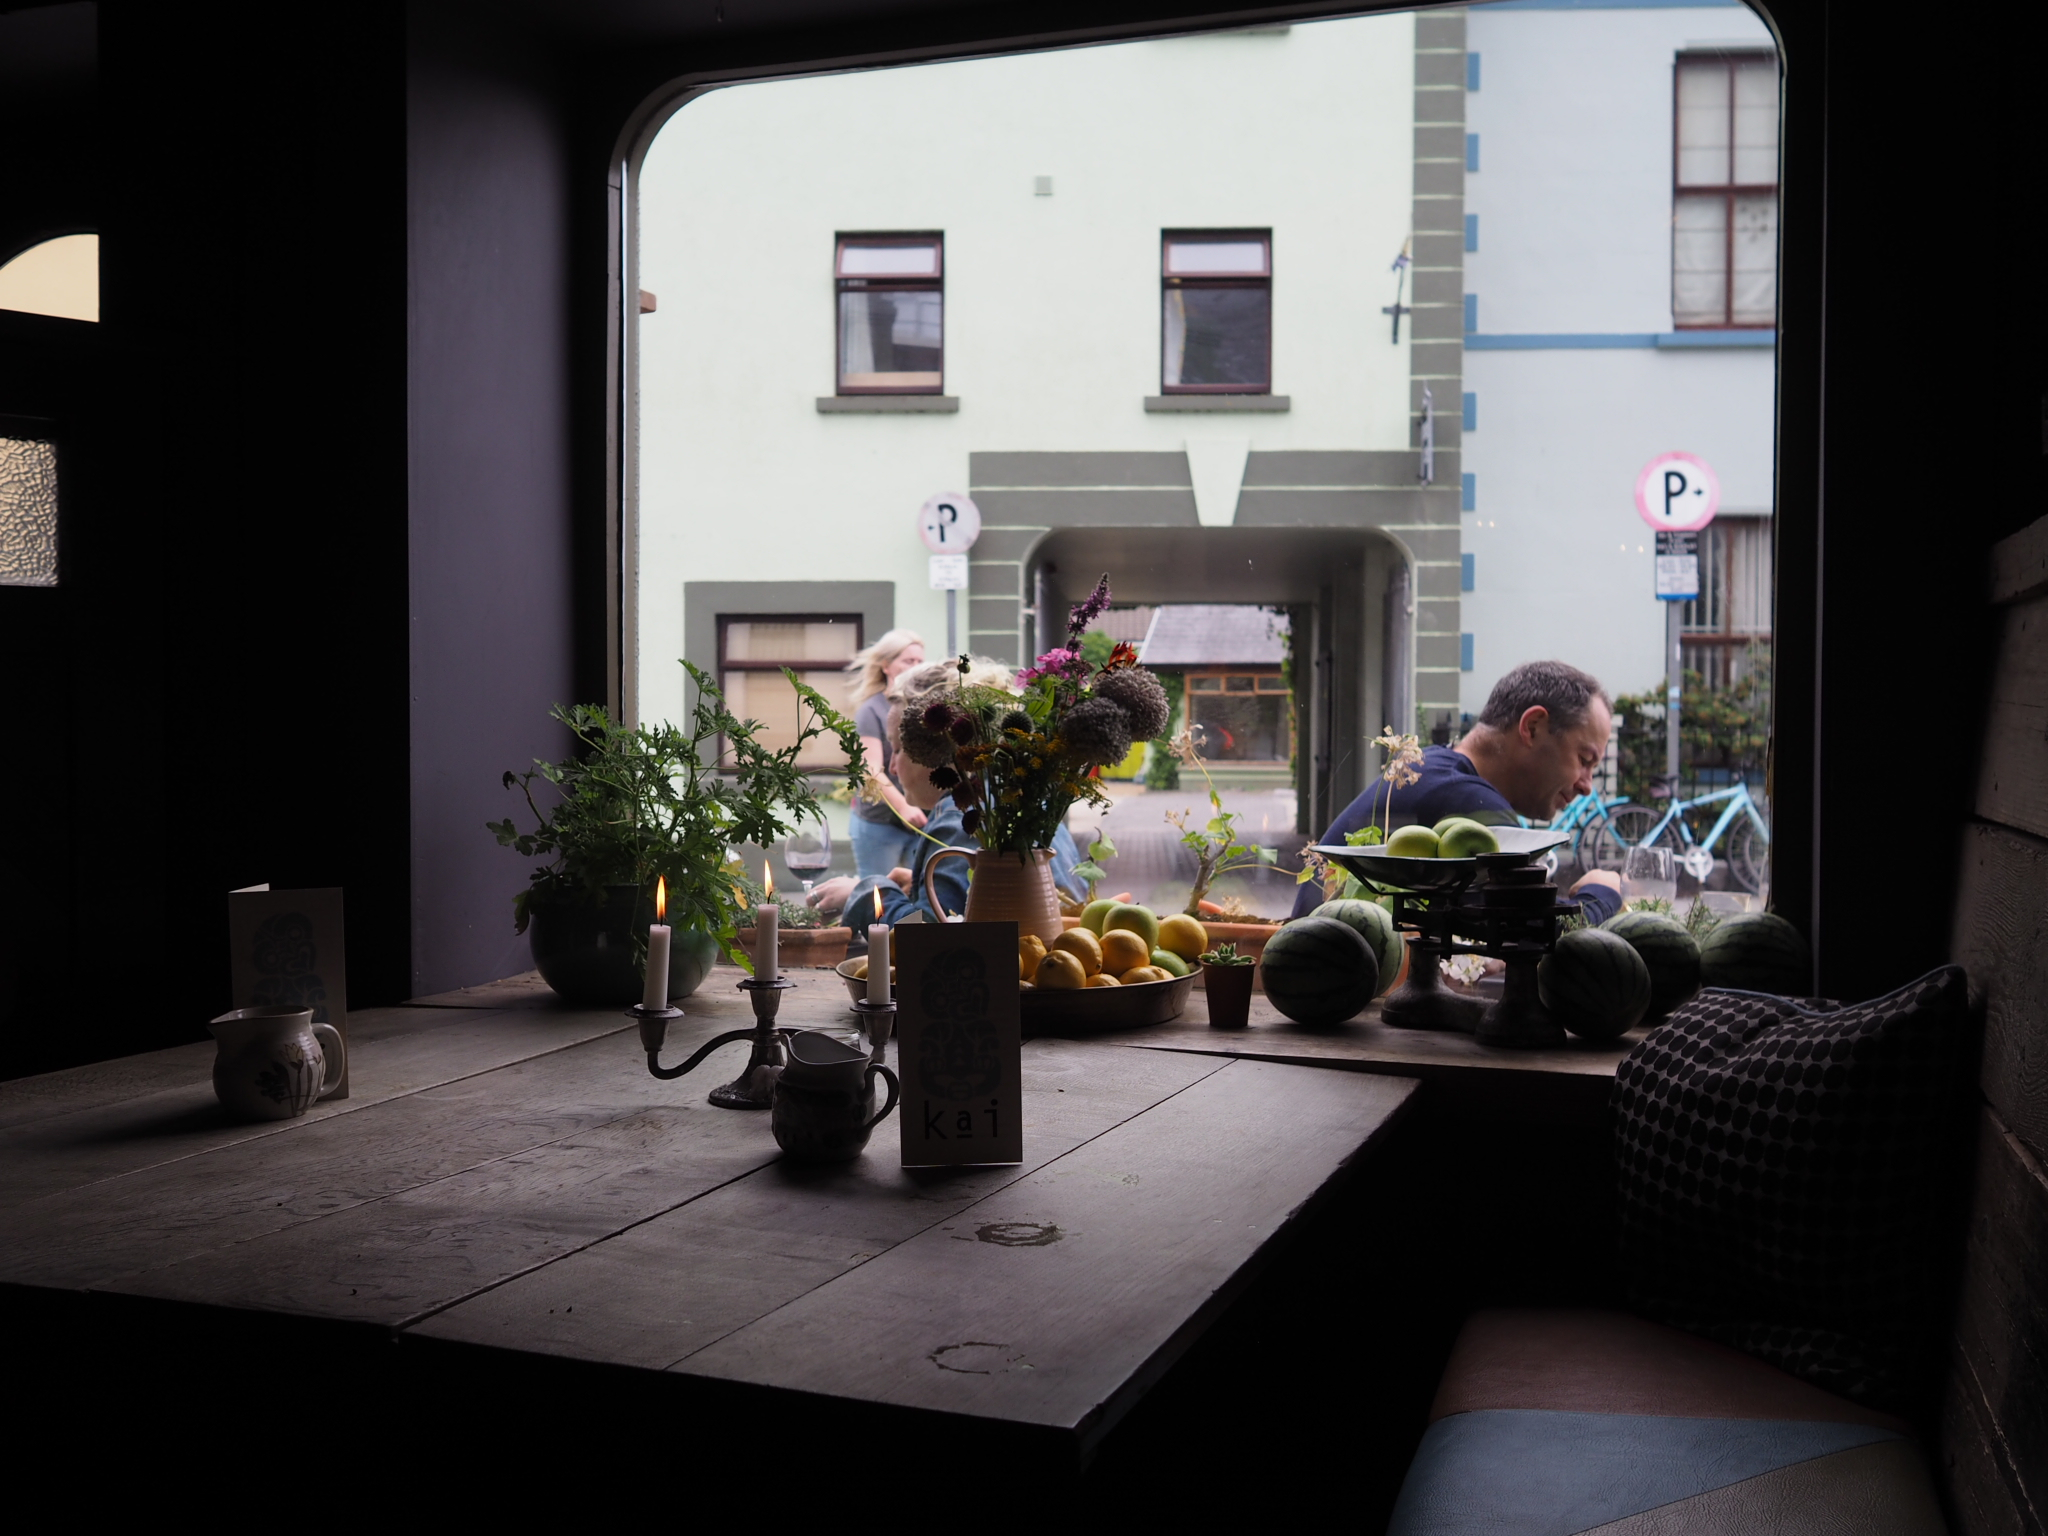 Lunch at Kai in Galway - Photo by Chris Behrendt